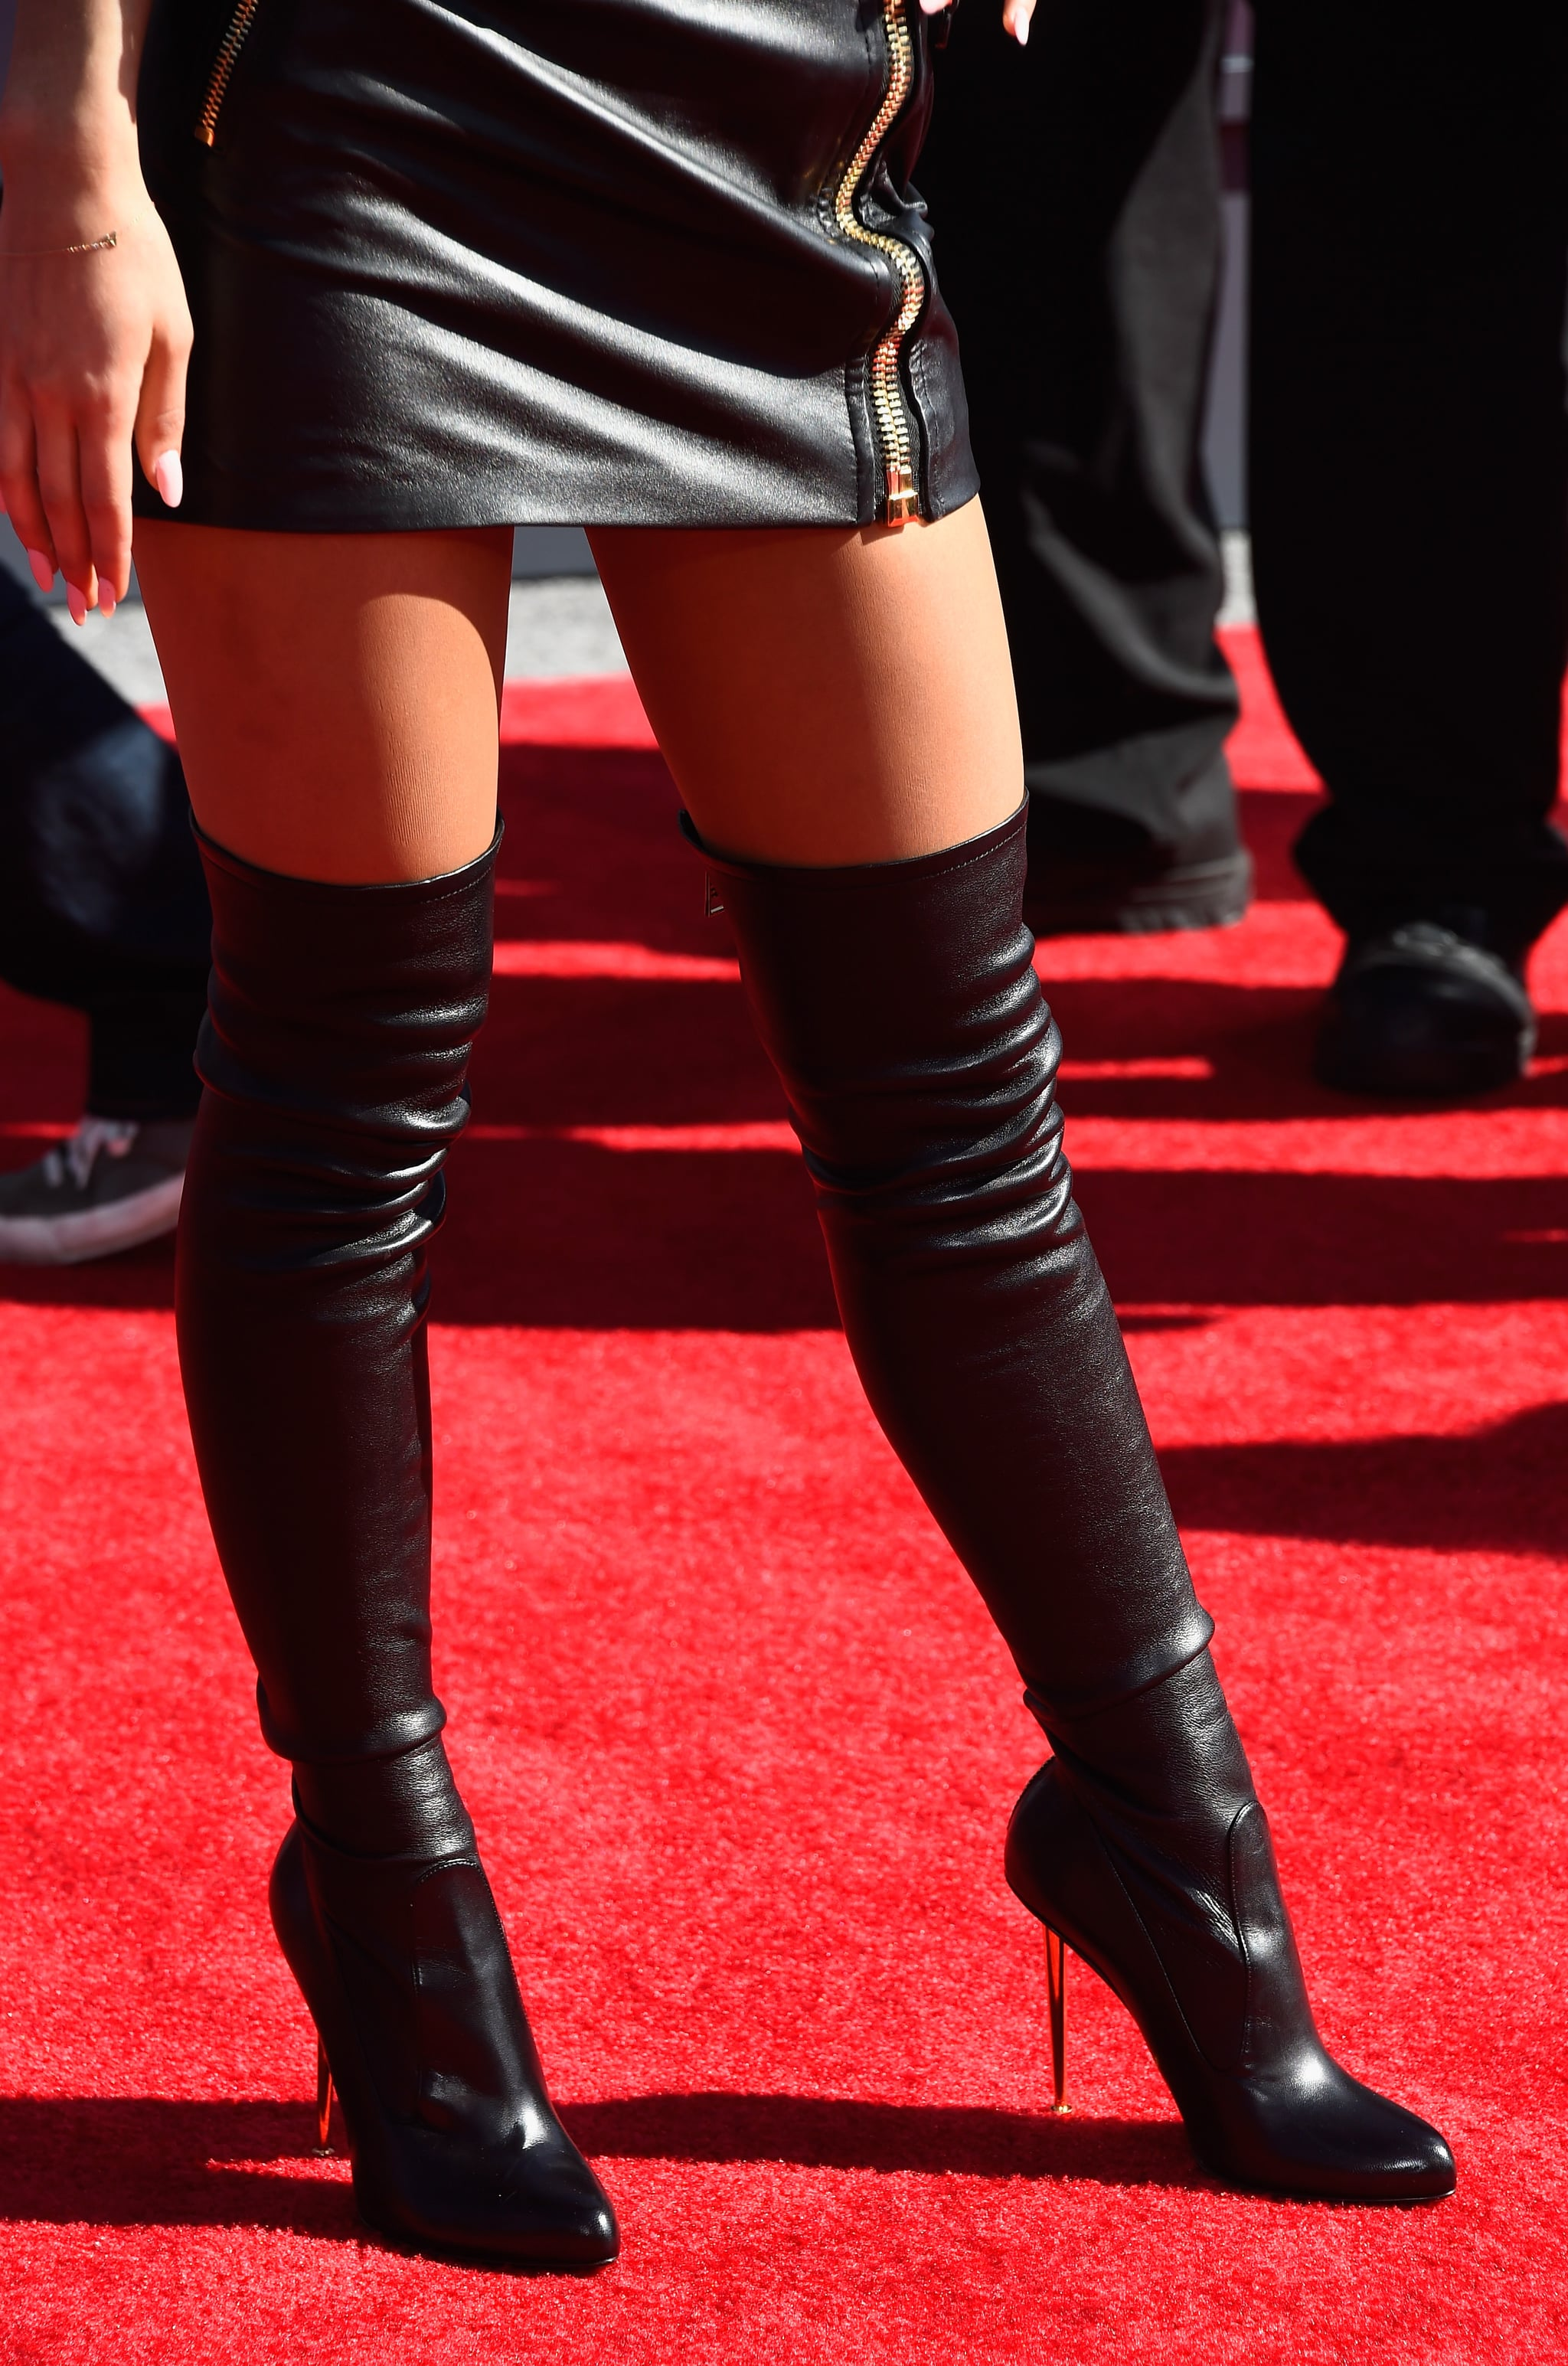 We certainly weren't expecting such a sexy look from Ariana Grande, who sported these thigh-high Tom Ford boots with her Moschino minidress.